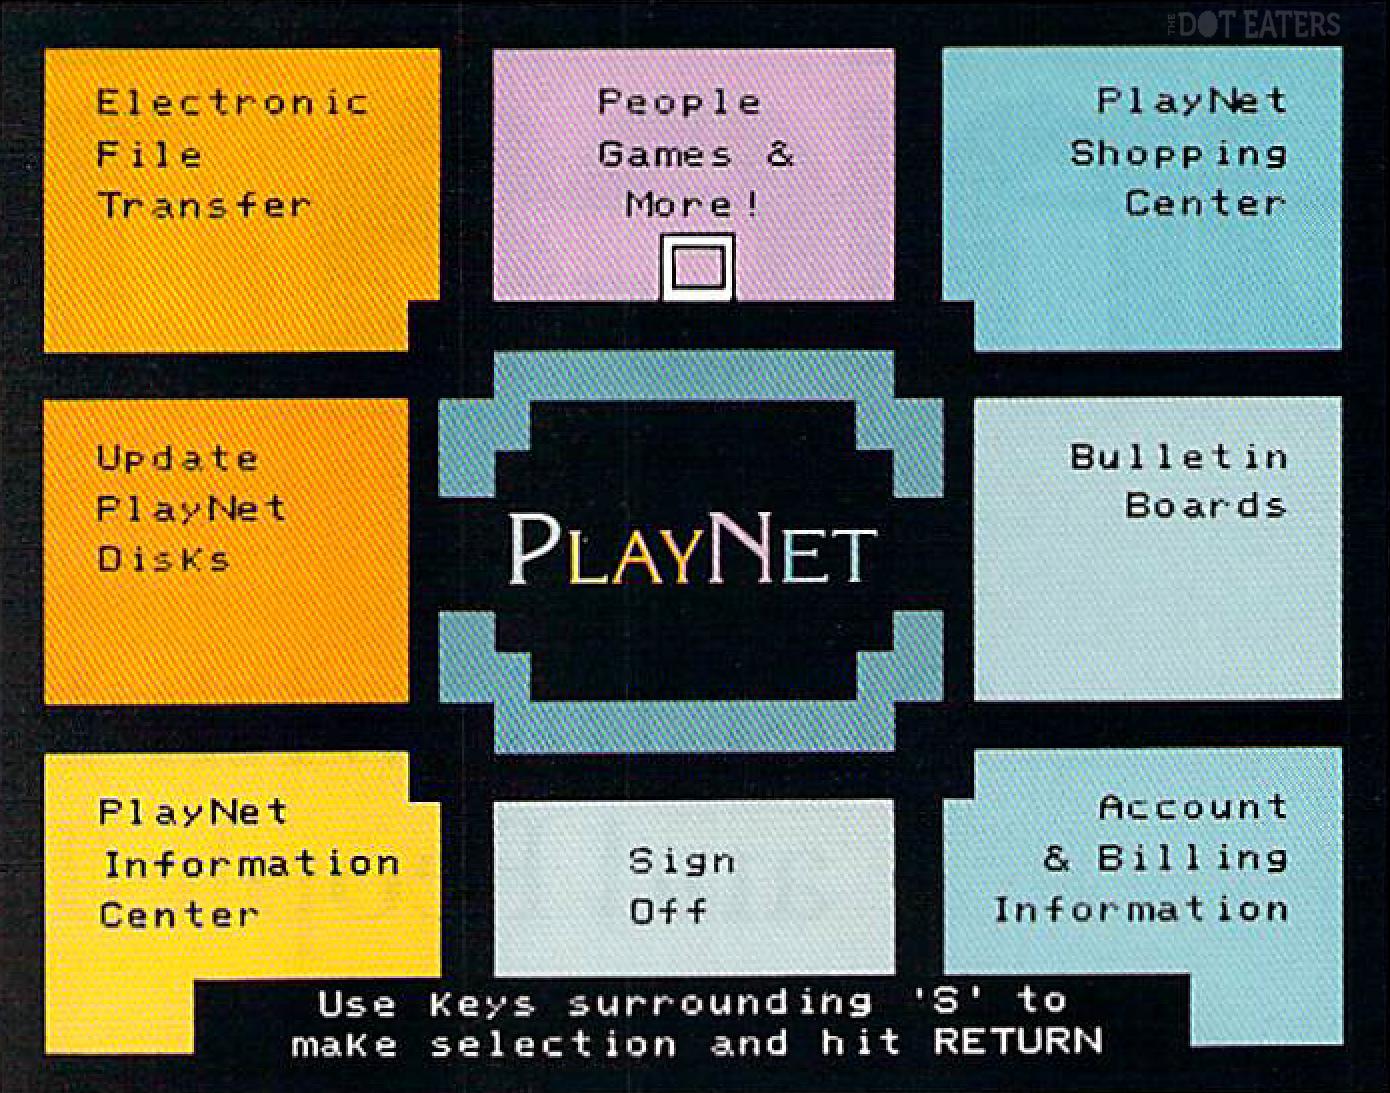 UI for the PlayNet online service, which would be licensed by QuantumLink